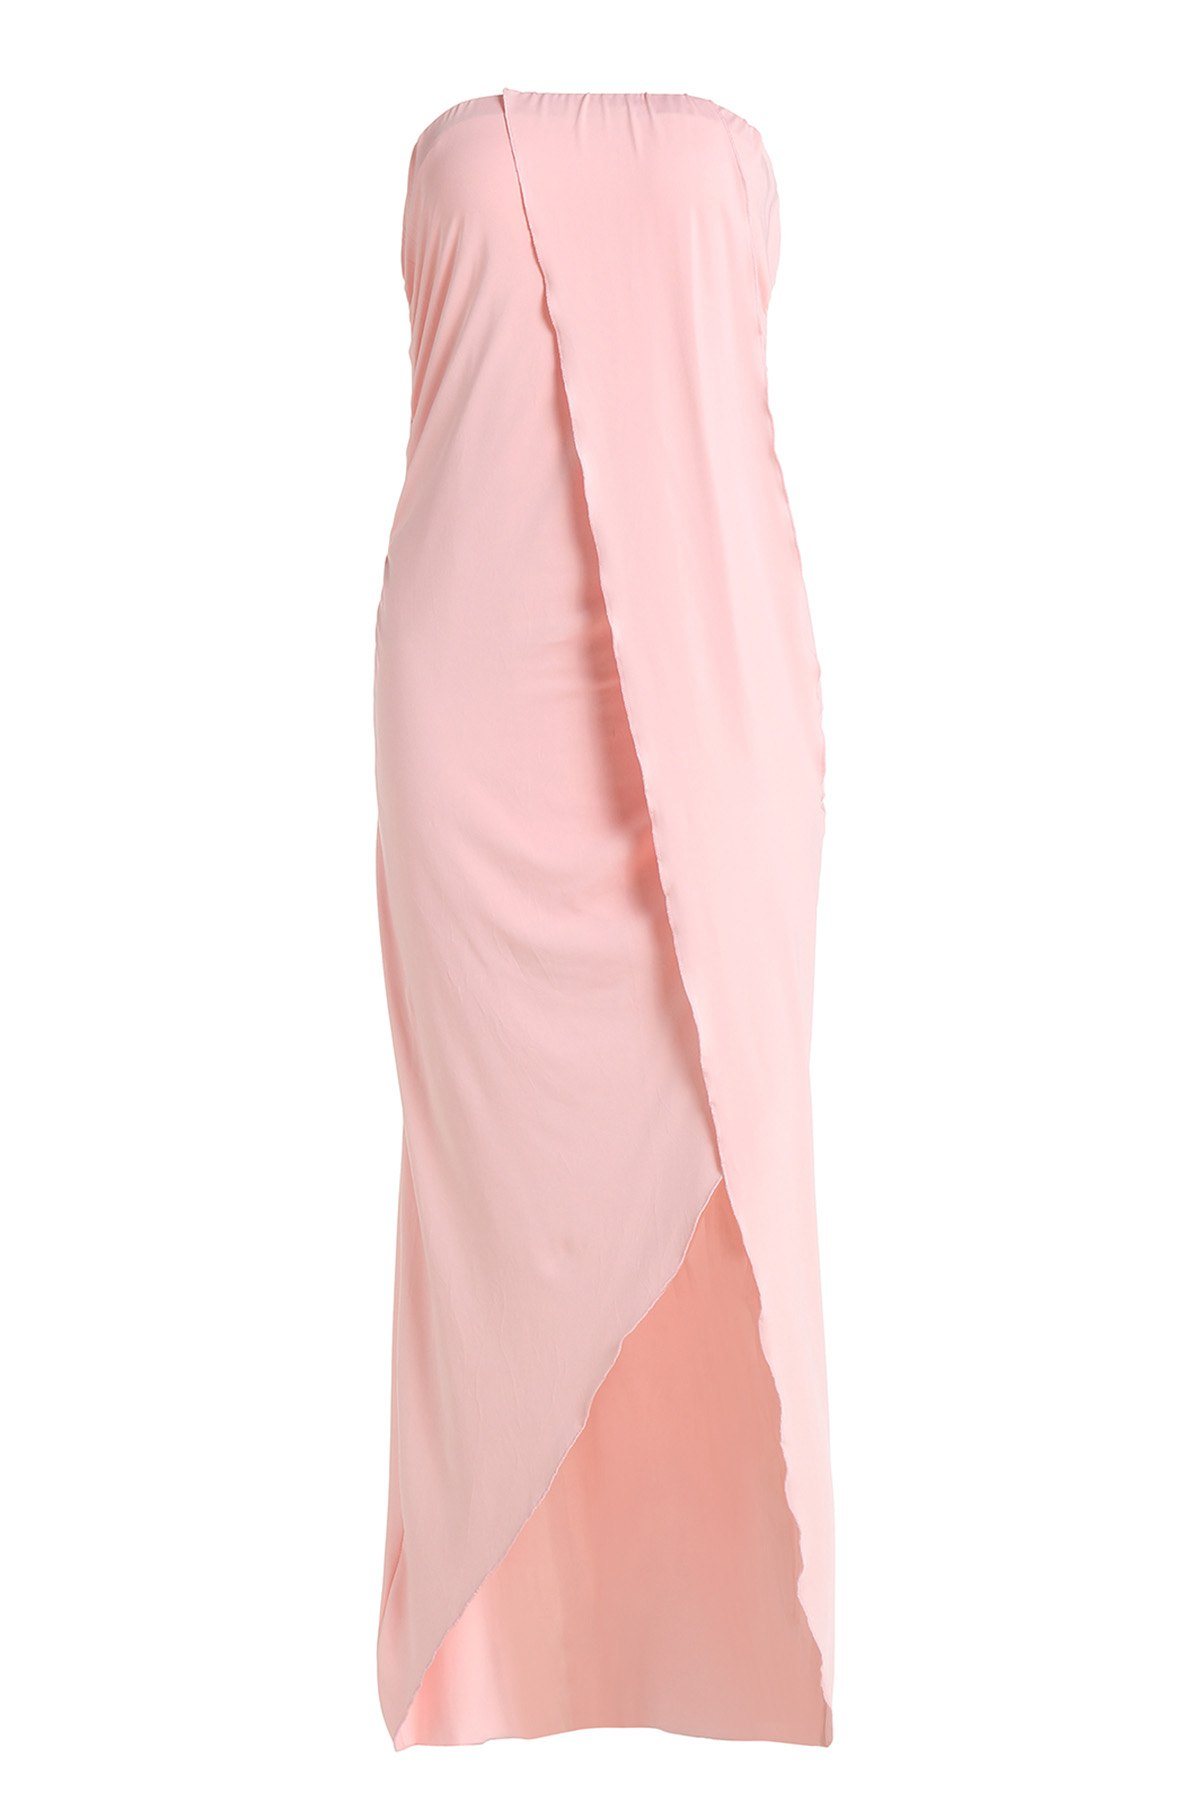 Sexy Strapless Sleeveless Solid Color Asymmetrical Women's Dress - PINK M